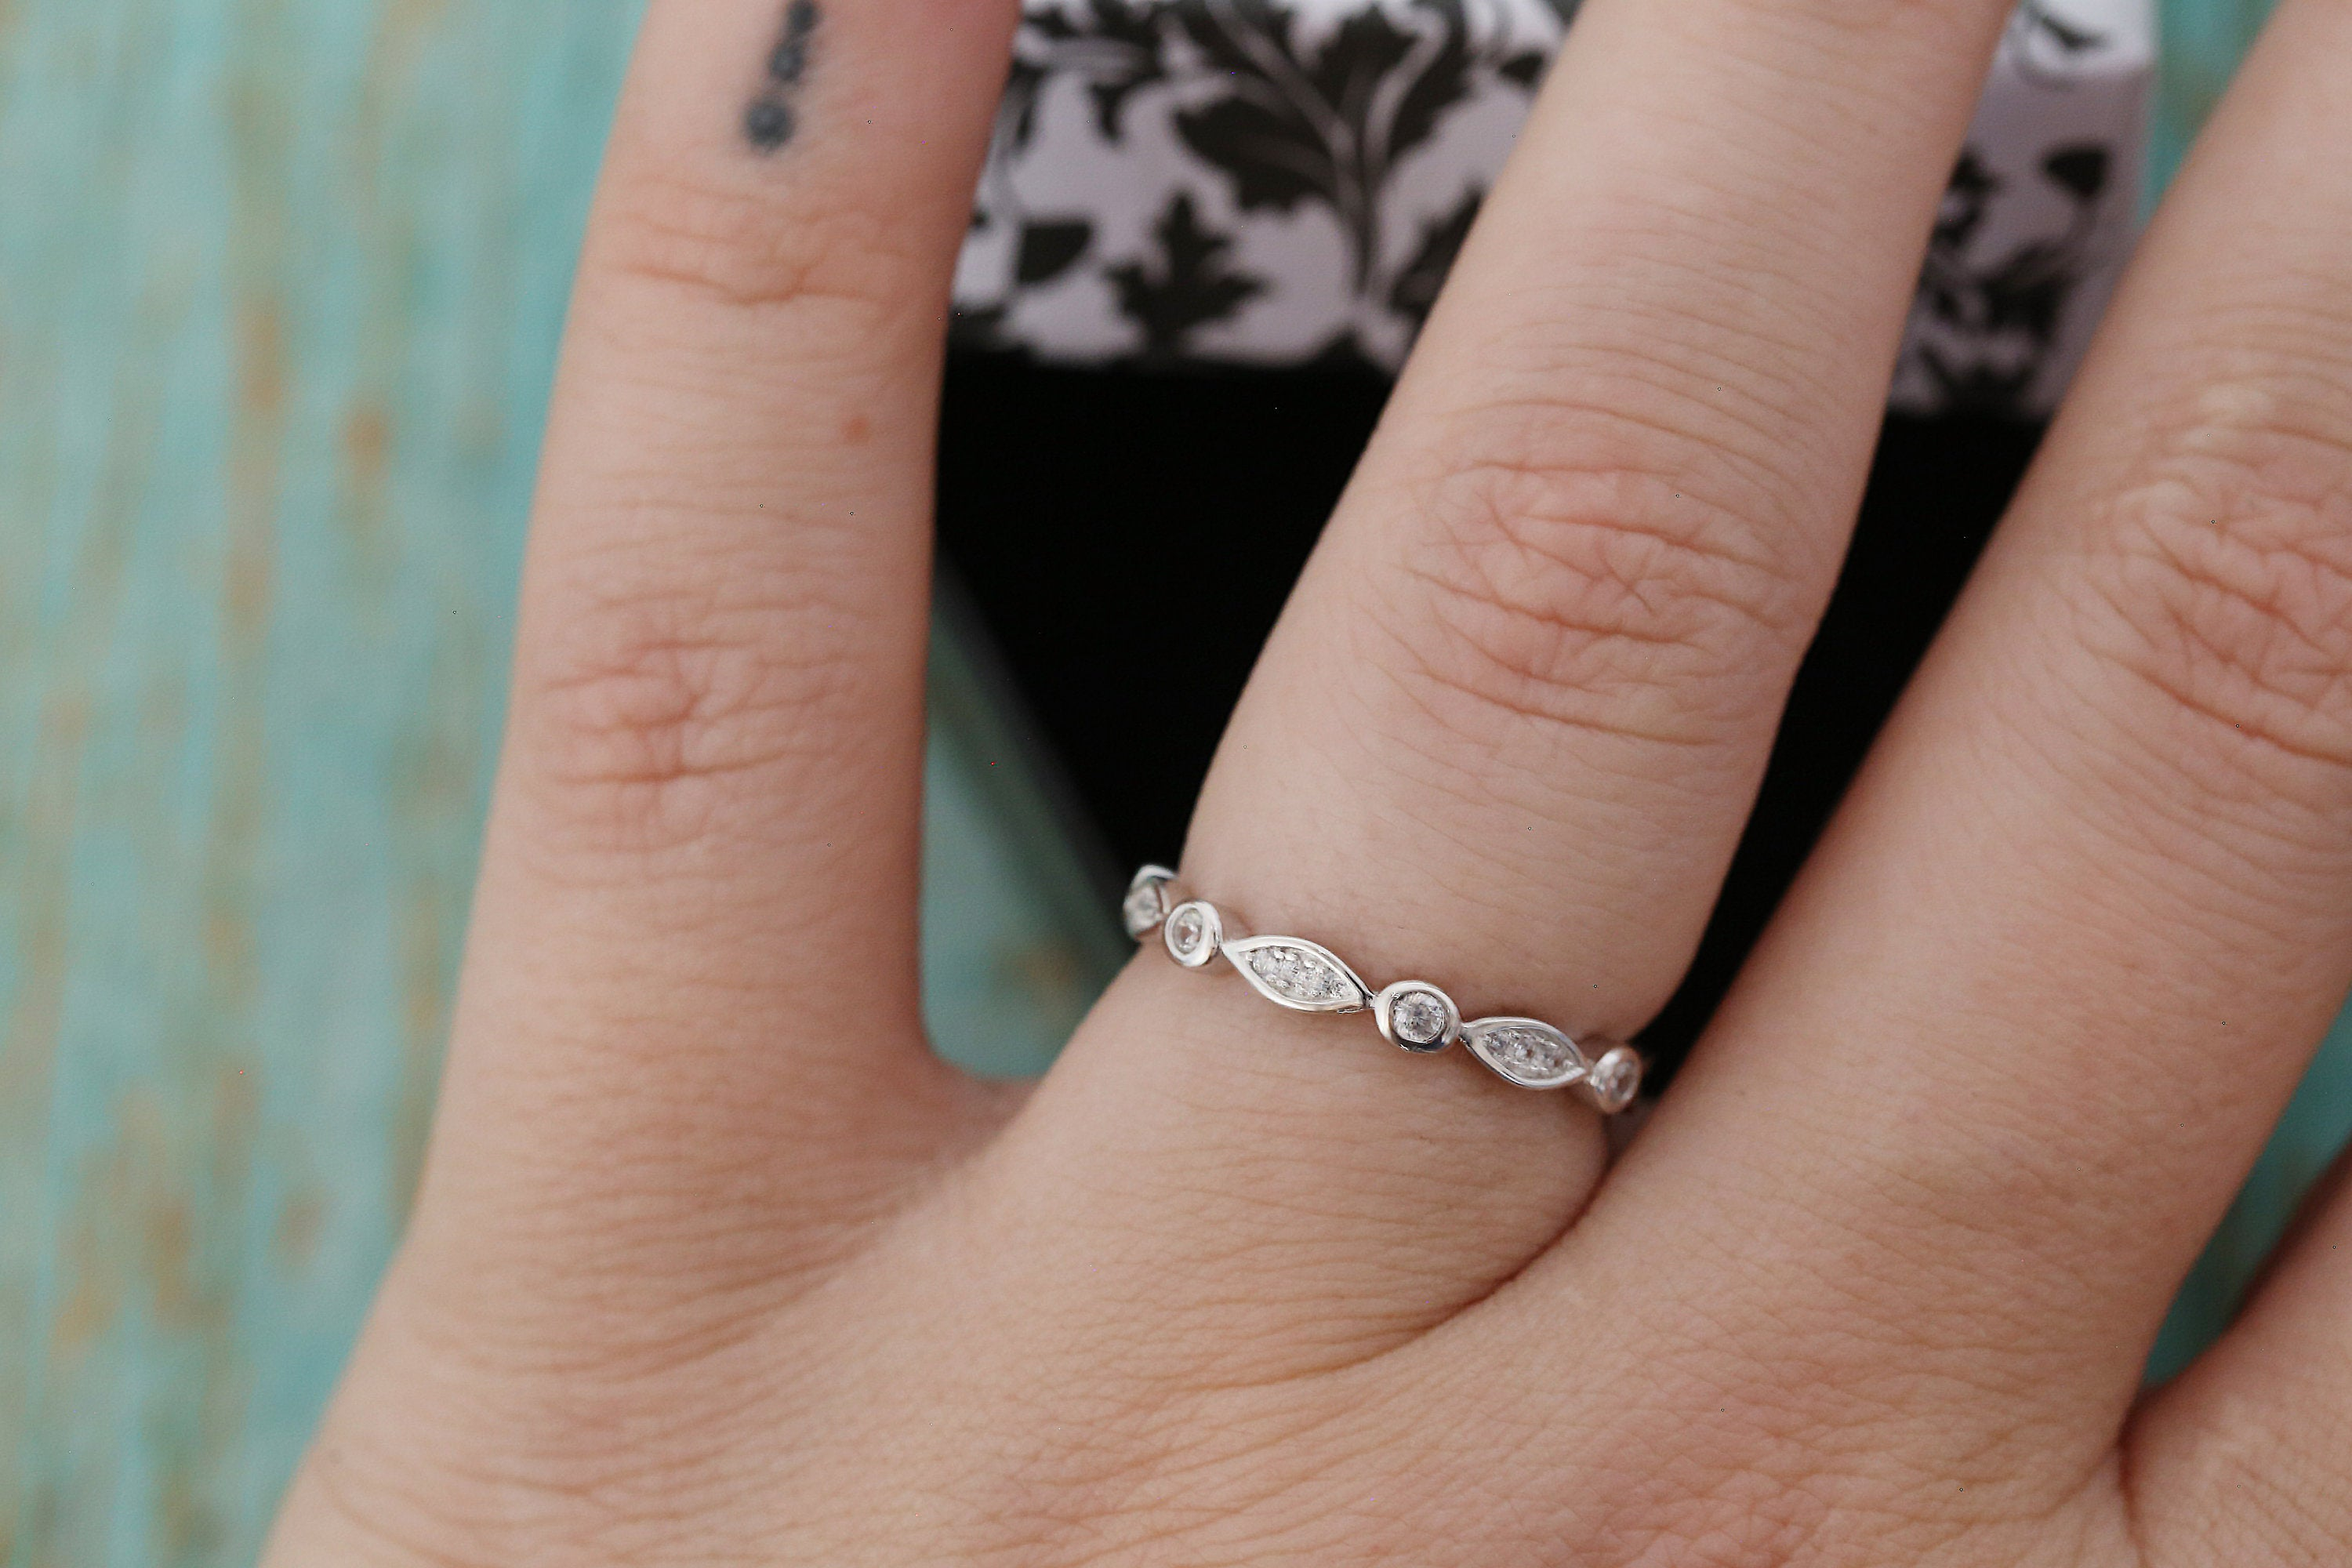 Cremation Ring - Sterling Silver Half Marquise Eternity Band Ring - Cremation Jewelry - Ash Ring - Ash Jewelry - Urn Ring - Pet Loss